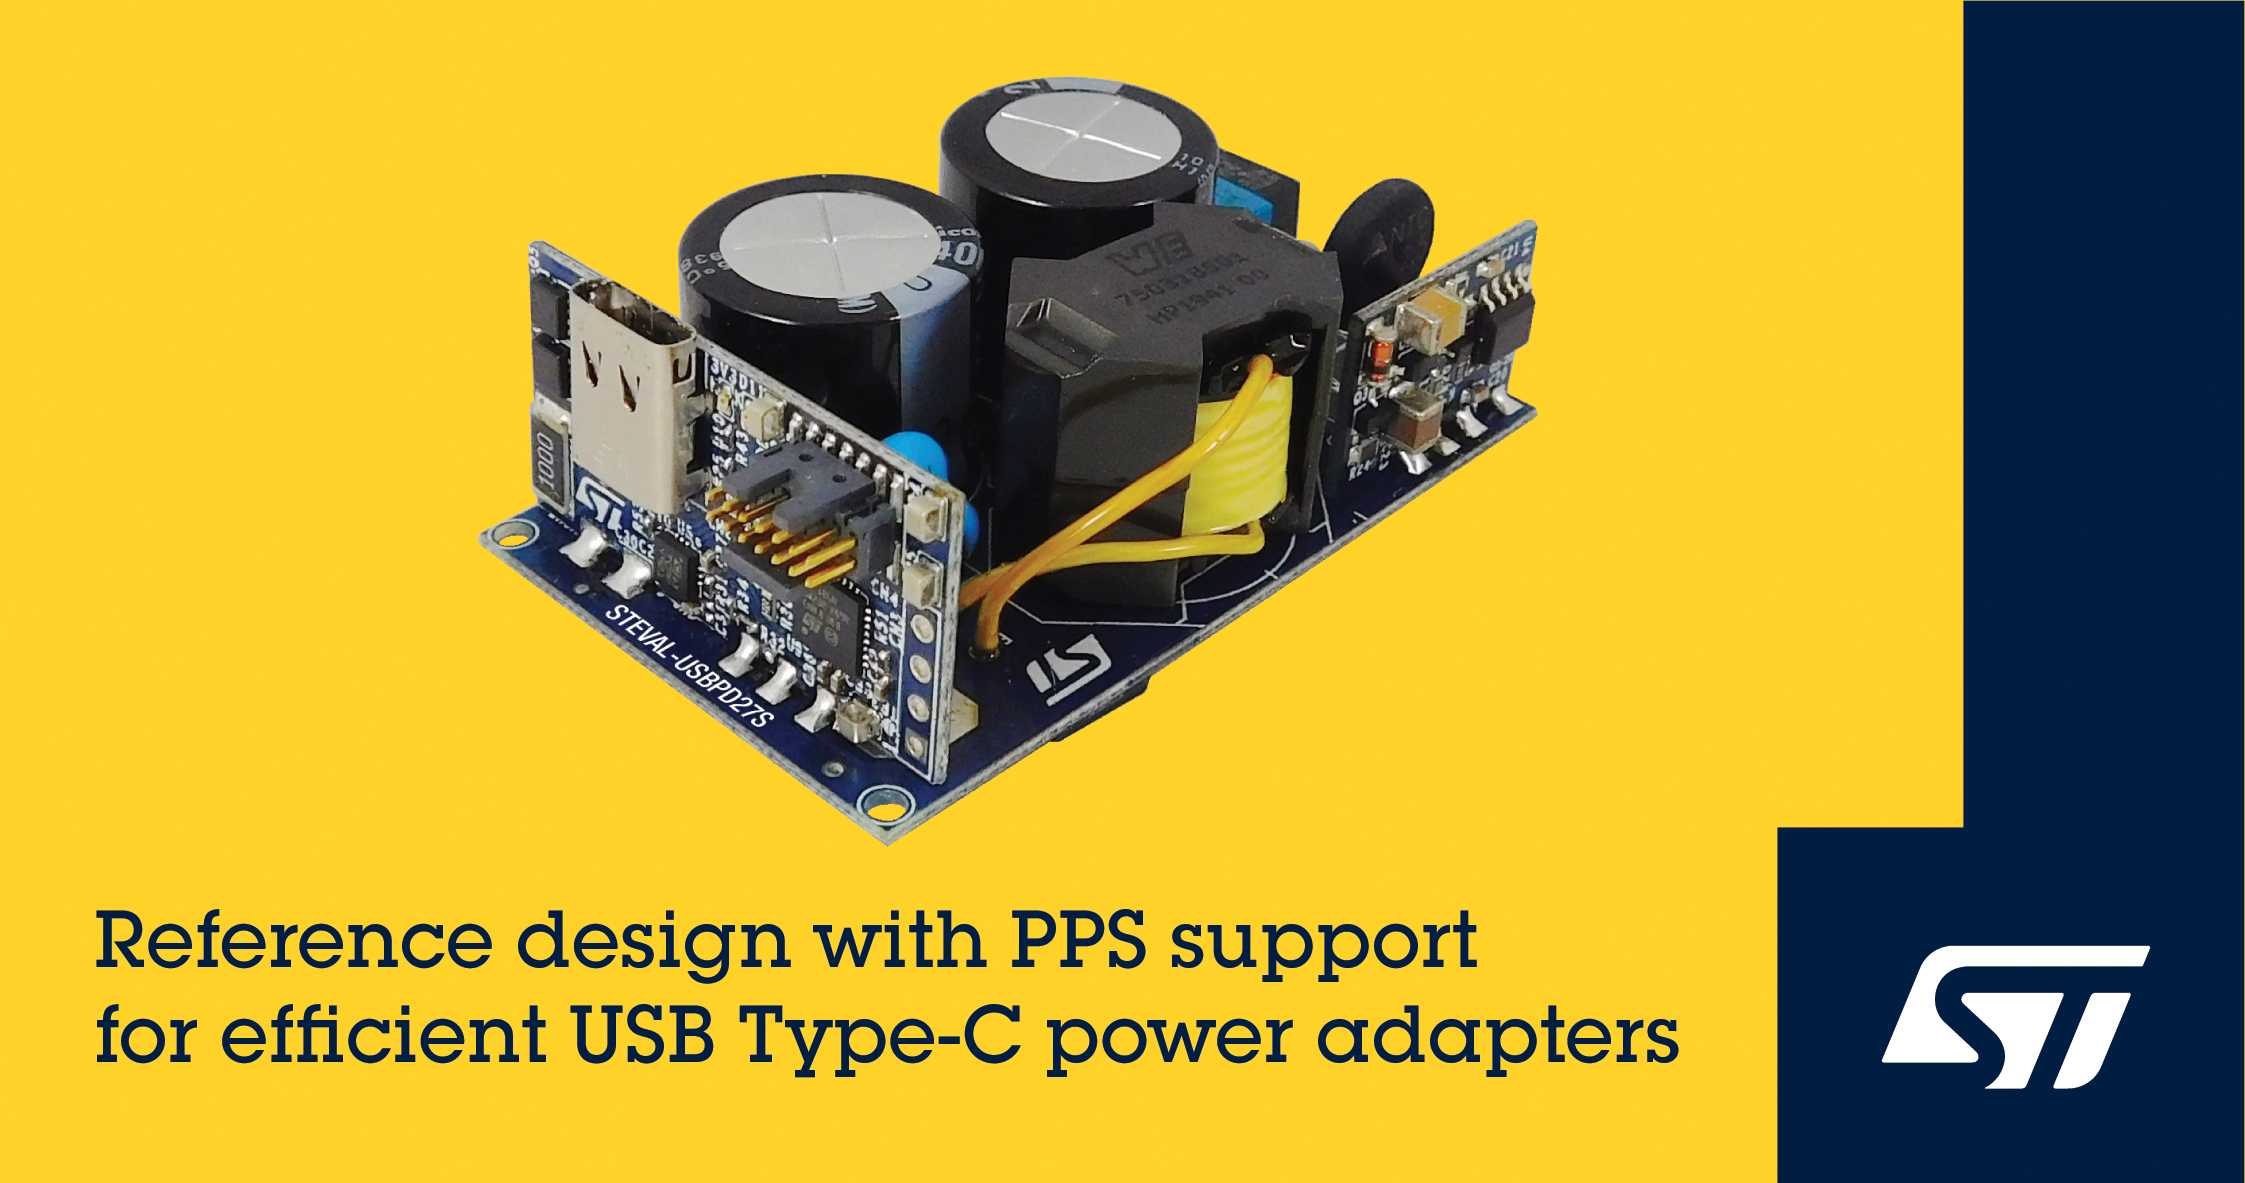 ST's STEVAL-USBPD27S To Speed Up The Built Time of Fast-Charging USB Power Adapters